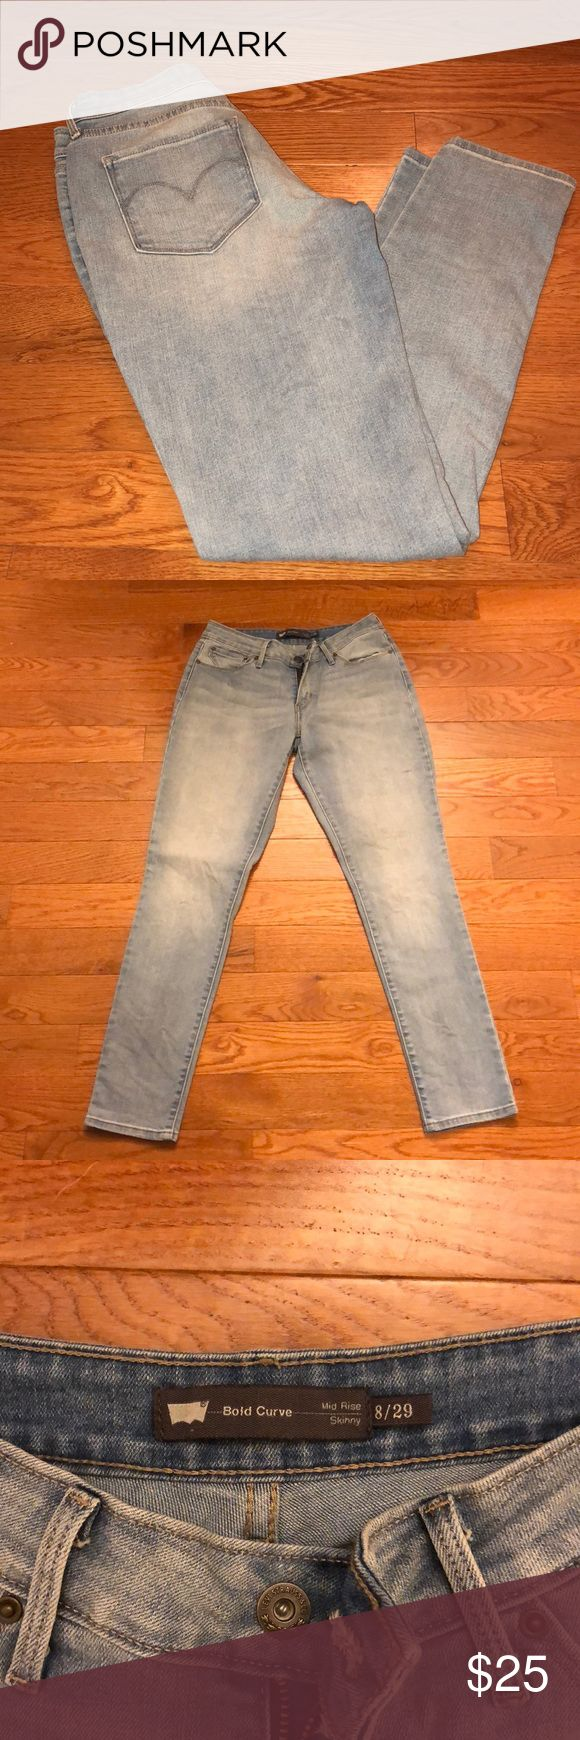 Levi Mid Rise Skinny Bold Curve Light Wash A light wash Levi Skinny mid rise skinny bold curve jean! Lightly worn and great fit! Regular length! Levi's Pants Skinny